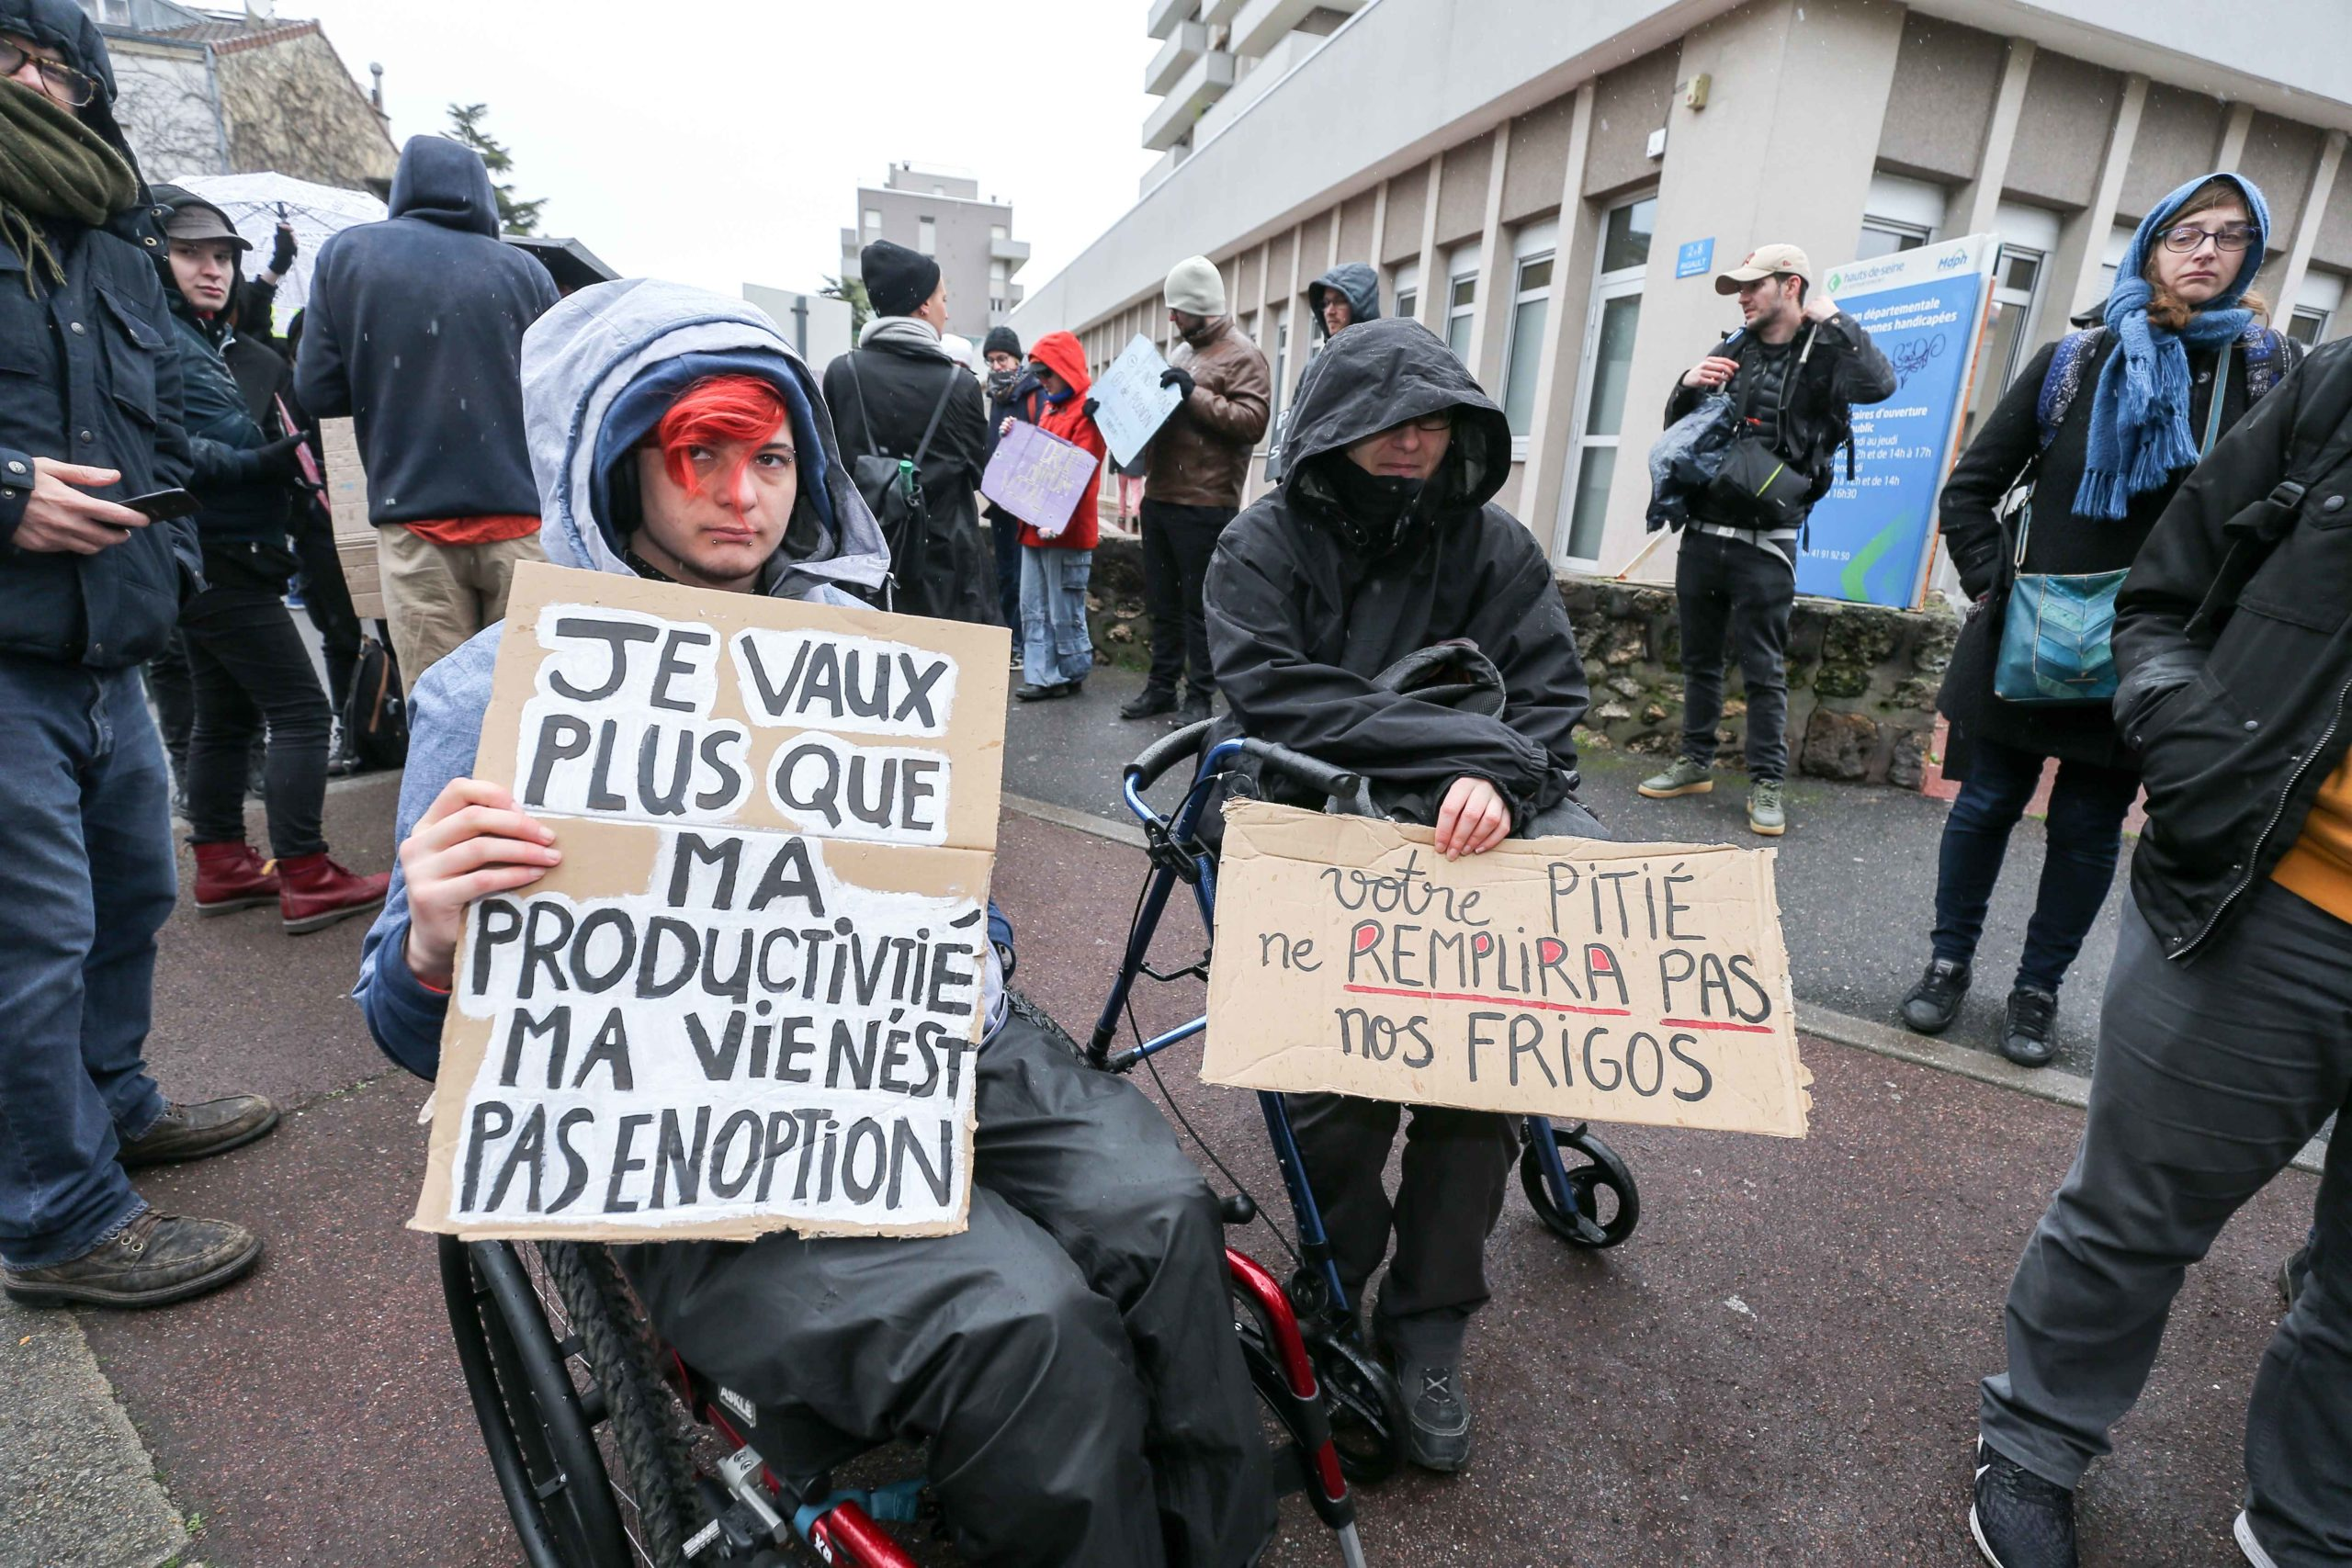 Persons in a wheelchair demonstrate for a greater inclusion of people with disabilies in front of the Departemental Center for Disabled Persons (Maison départementale des personnes handicapées MDPH) in Nanterre, in the inner suburbs of Paris, on February